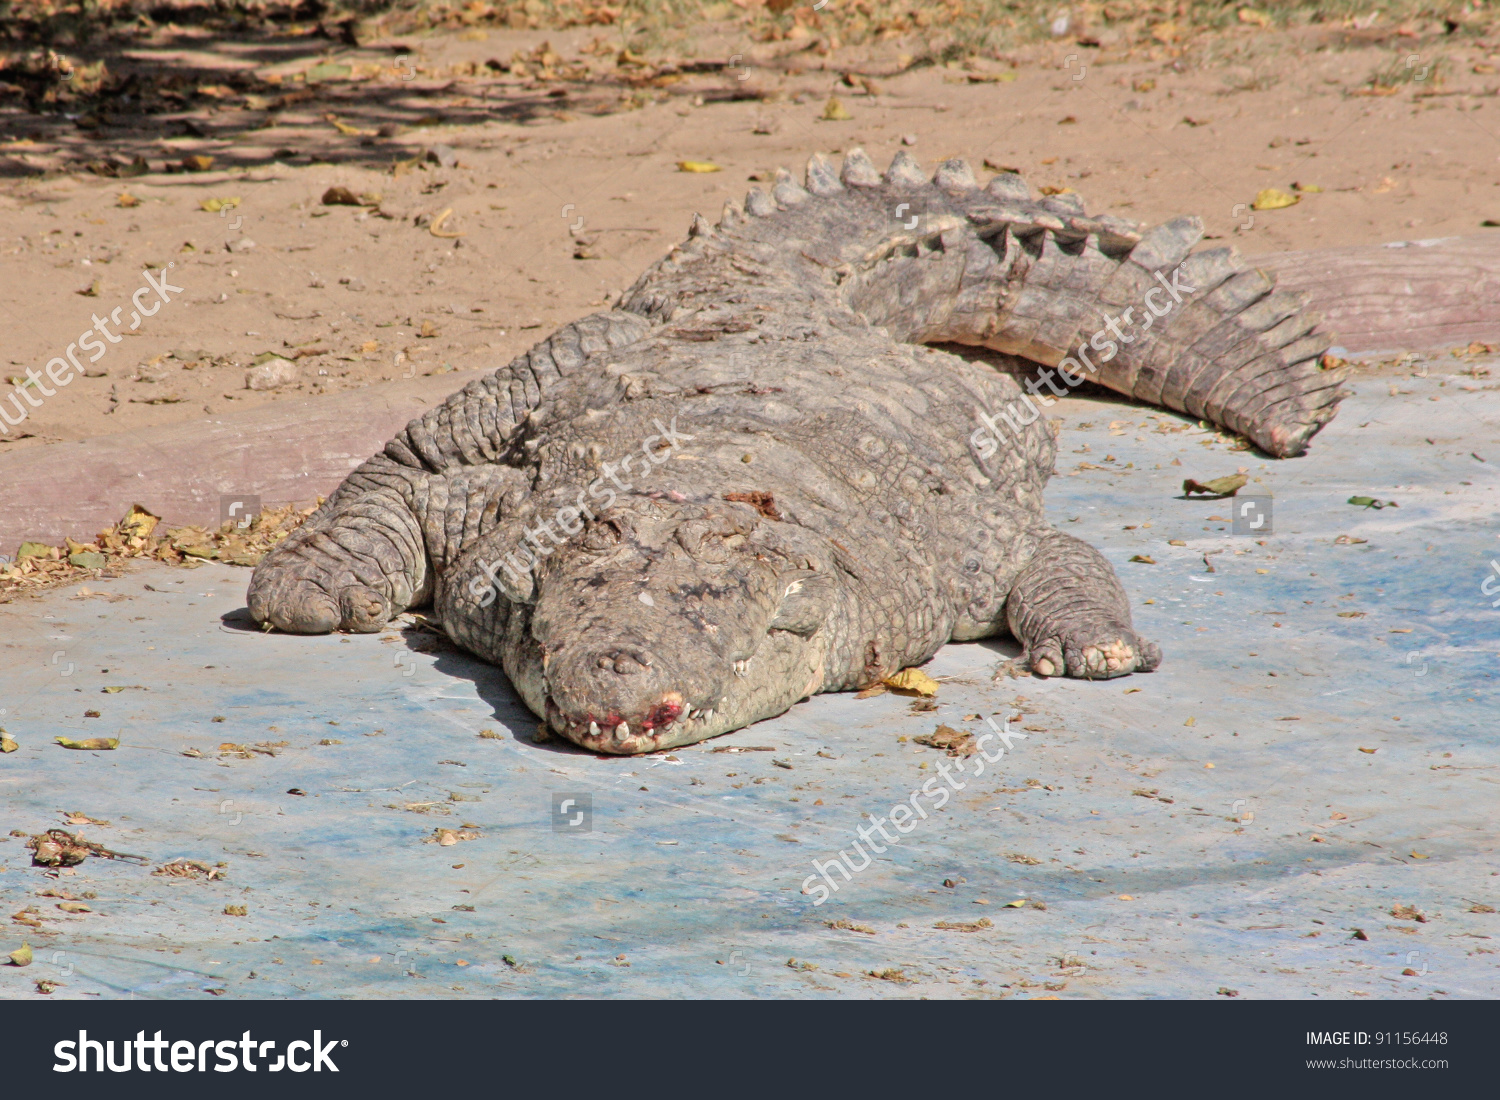 Alligator Jaipur Zoo India Stock Photo 91156448.